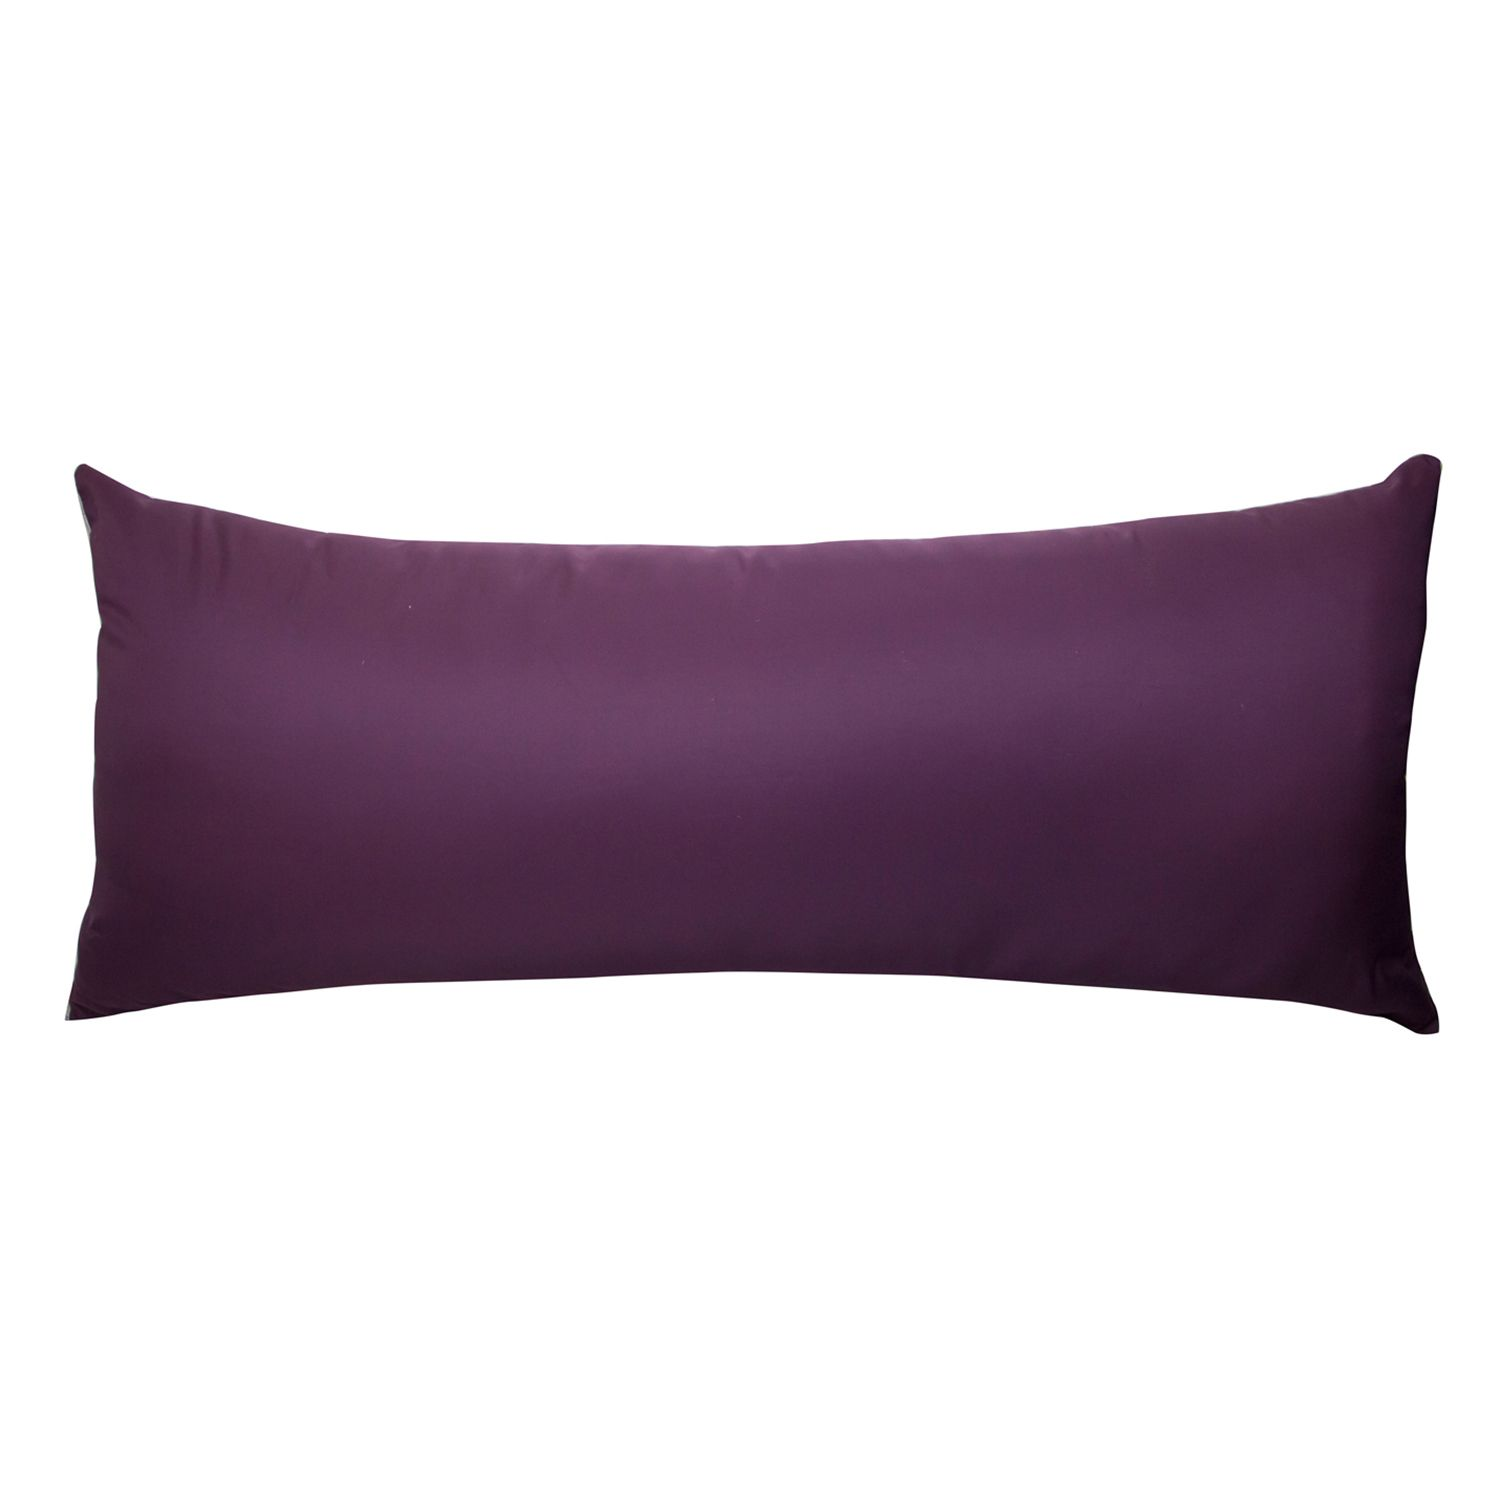 Bed Rest Pillow With Arms Paired With The Bed Lounger Bed Rest